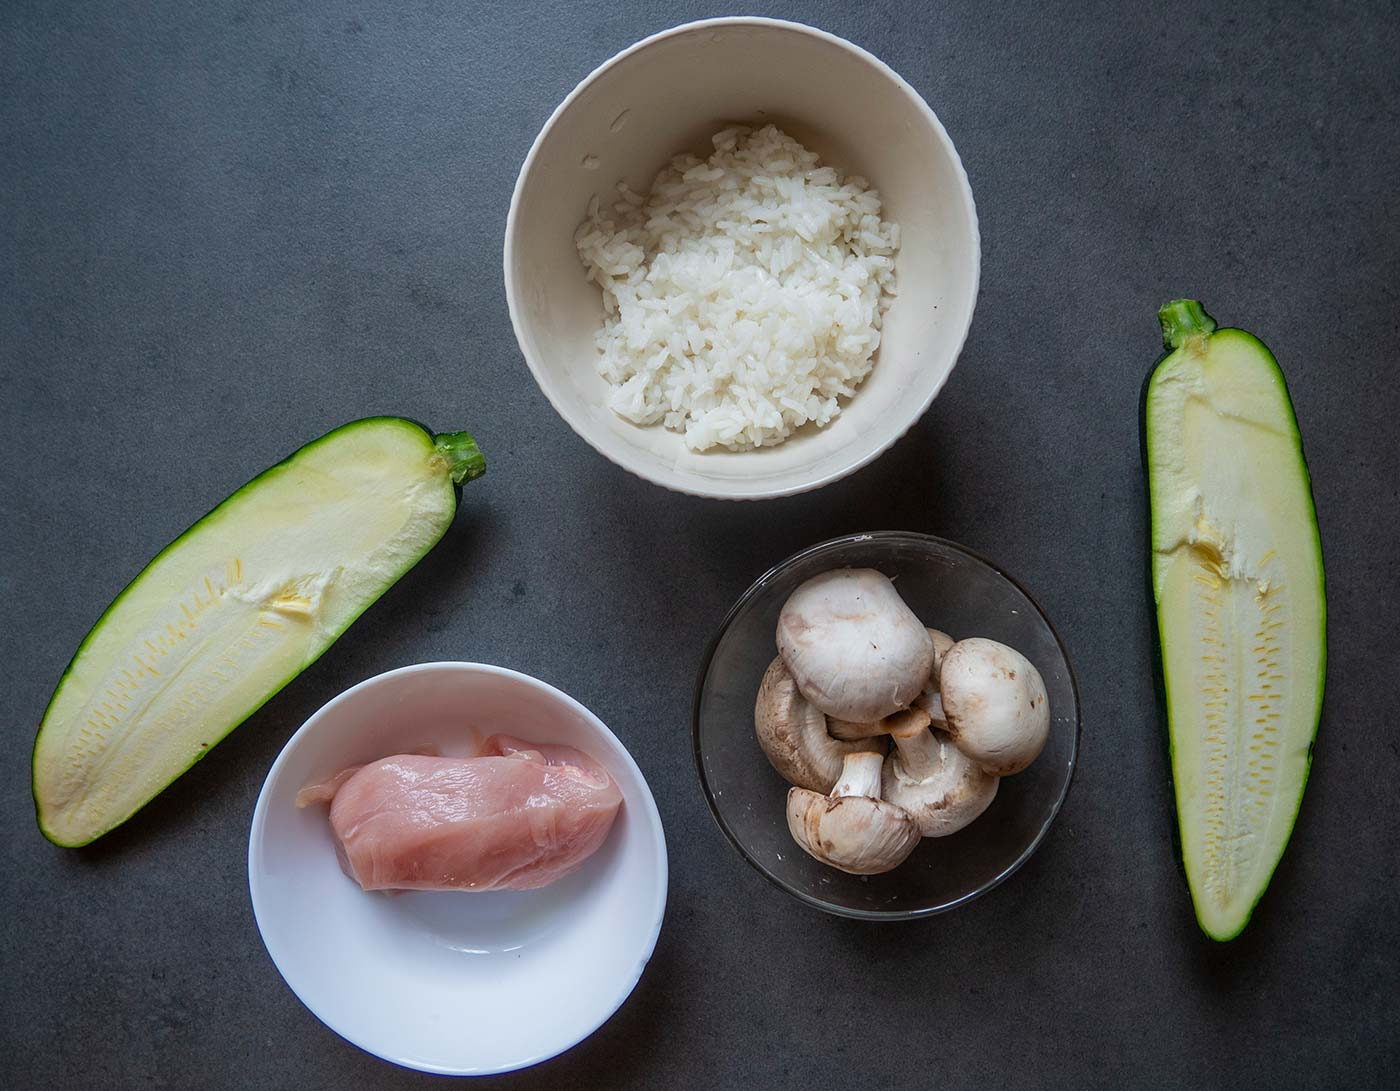 Ingredients for Stuffed zucchini